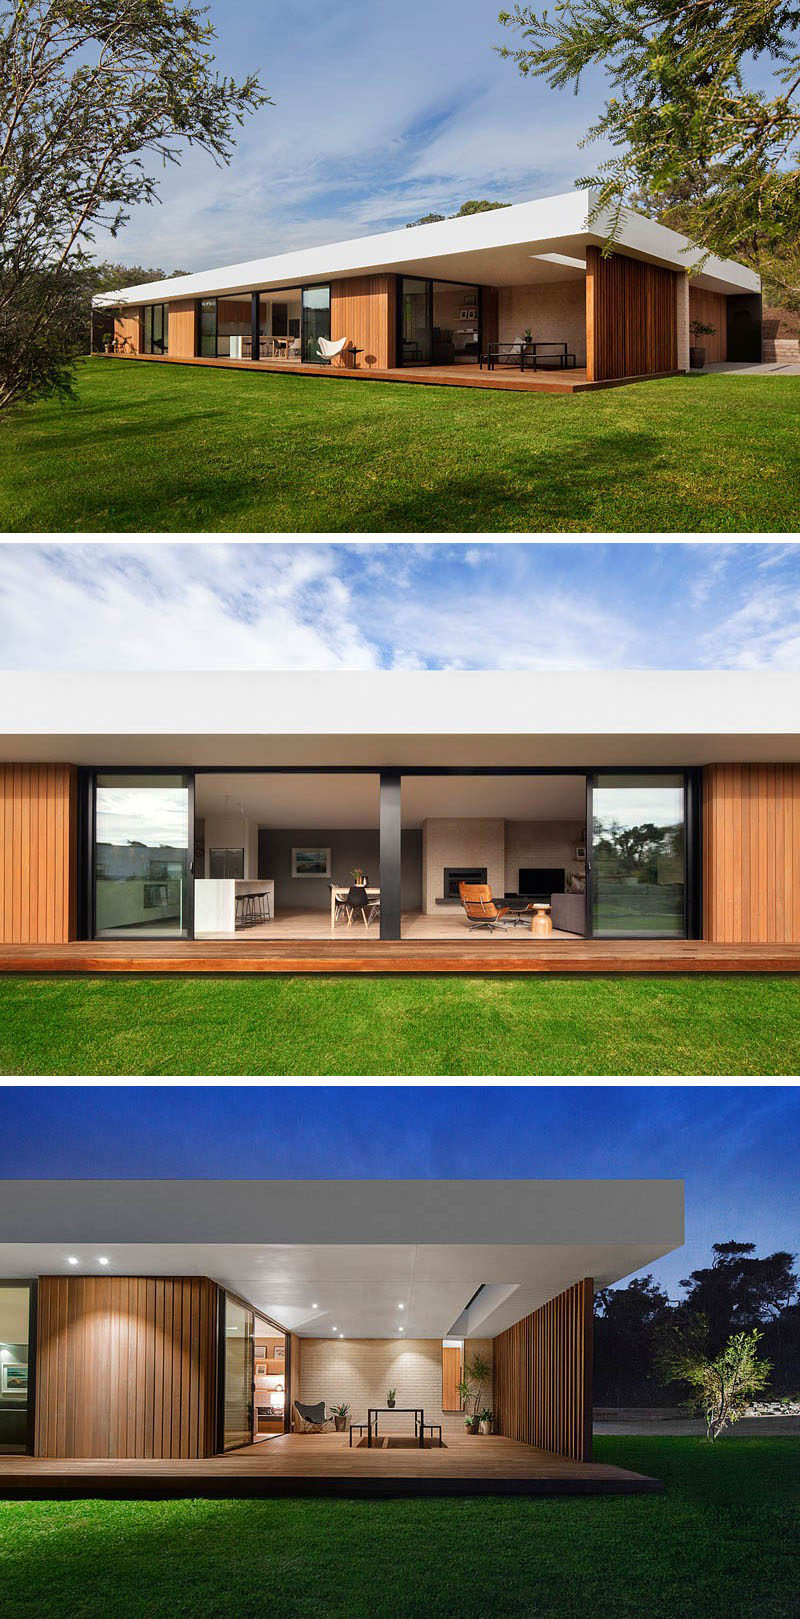 23 Awesome Australian Homes To Inspire Your Dreams Of ... on Aust Outdoor Living  id=24386